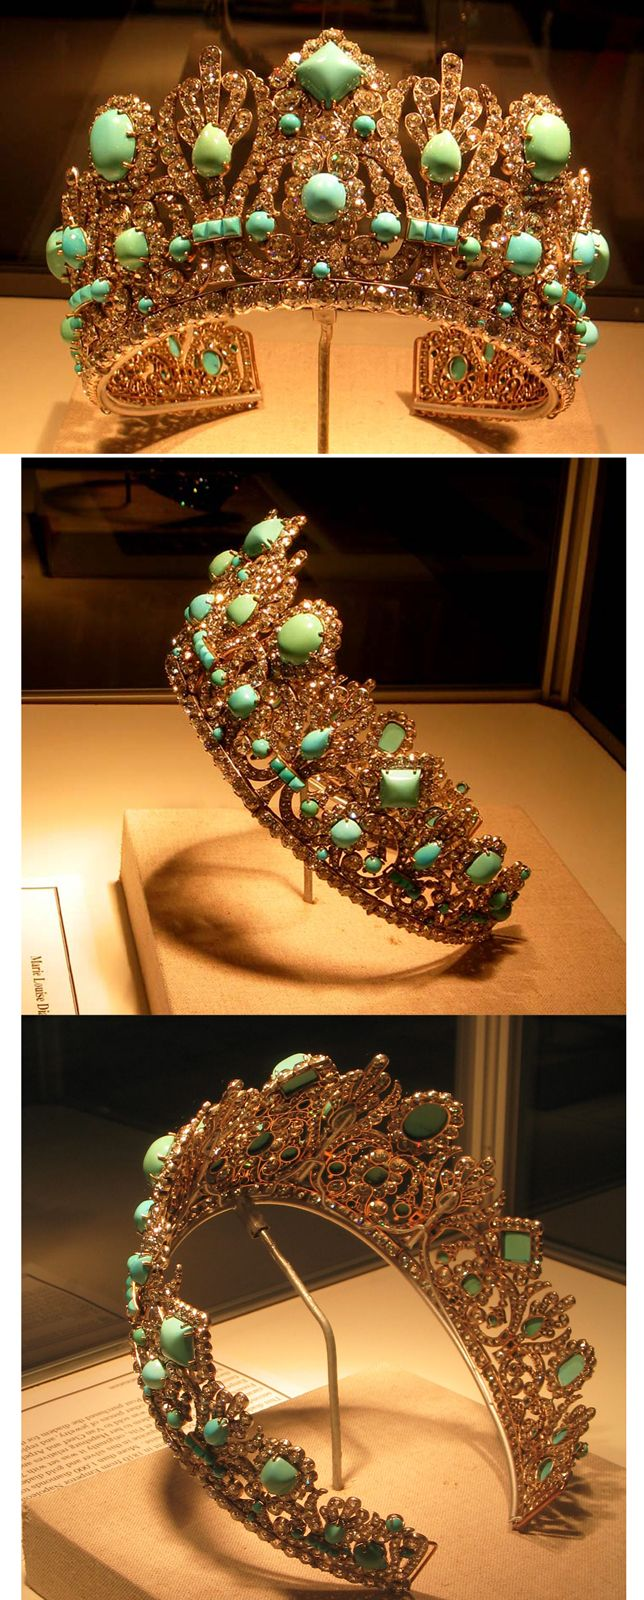 This wedding present from Emperor Napoleon I to Empress Marie Louise his second wife Originally, was fitted with 79 emeralds and the current 1000 diamonds that total 700 carats Altered in 1952 by Van Cleef and Arpels who replaced the emeralds with Persian turquoise, set in both silver and gold metal These jewelers obtained the crown from Hapsburg relatives of Empress Marie Lousie and sold the turquoise tiara to Marjorie Merriweather Post who gave it to the Smithsonian Institution in 1971